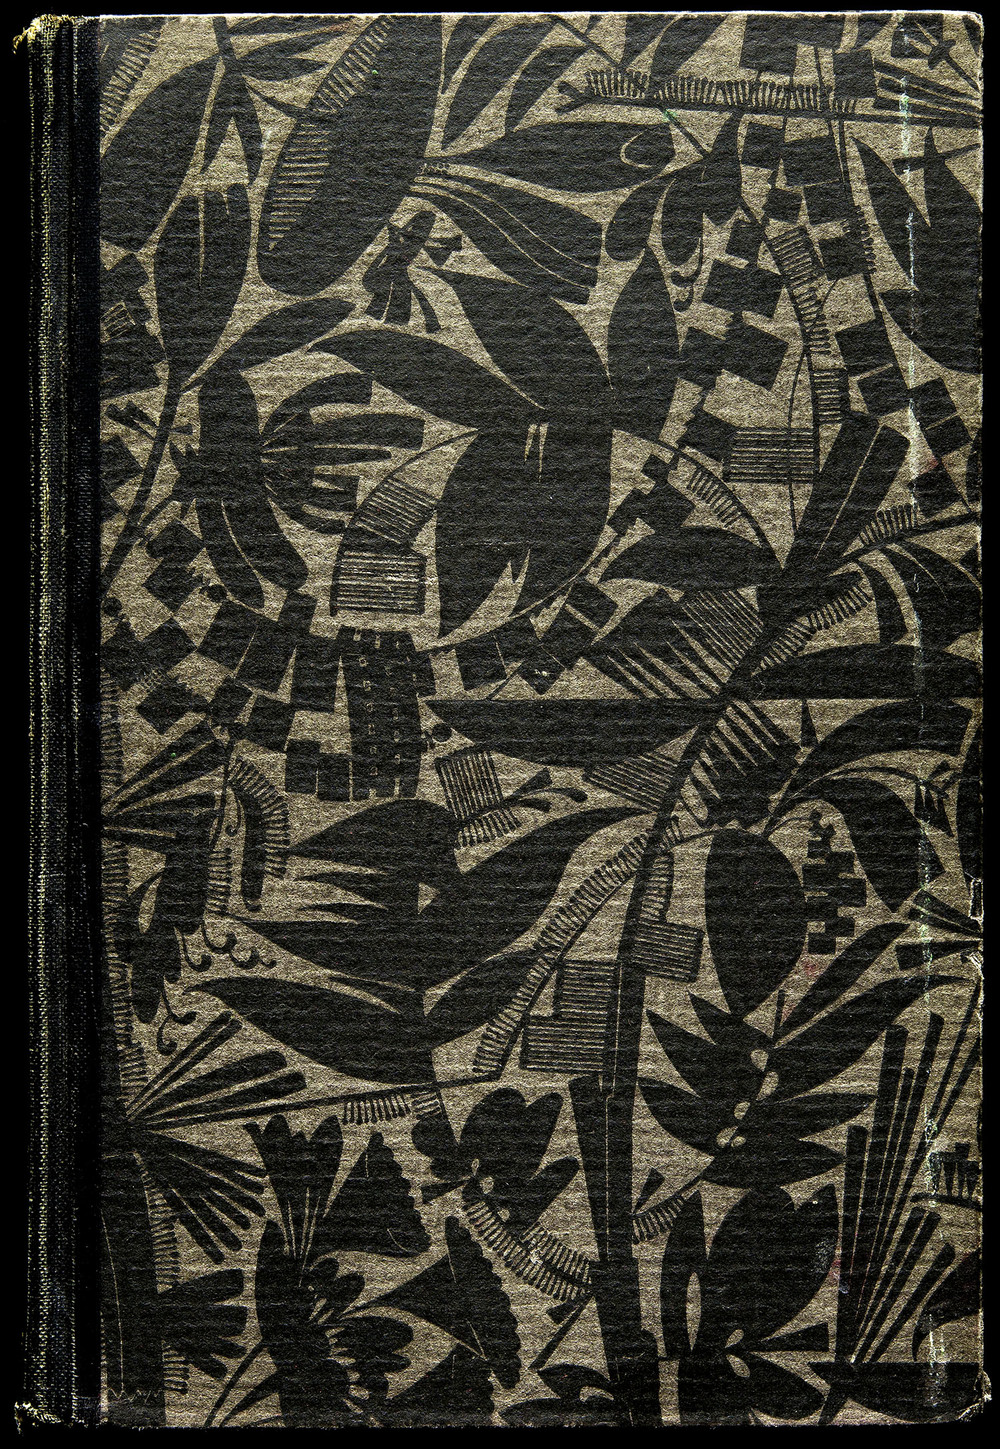 Tales  by Edgar Allen Poe, Lakeside Press, Chicago, 1930, 12.7 x 18.7 cm